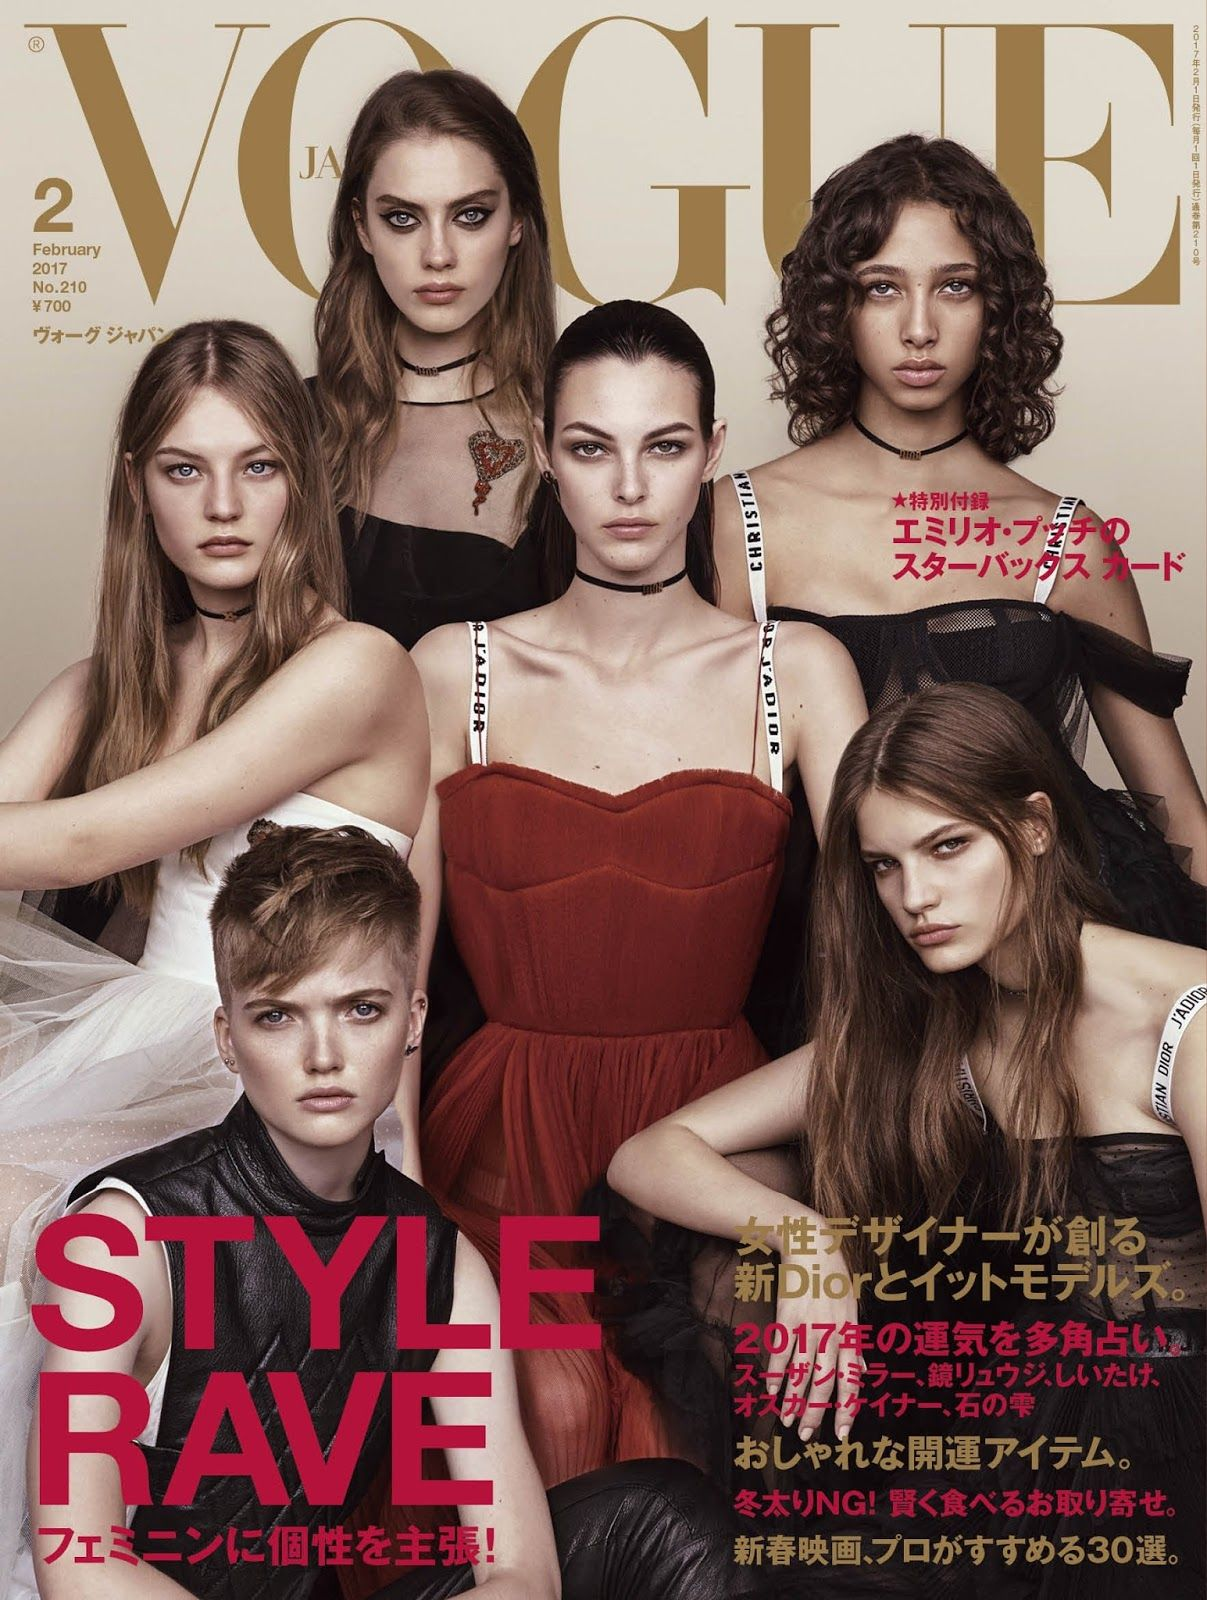 Vogue S Covers Top Models 2017